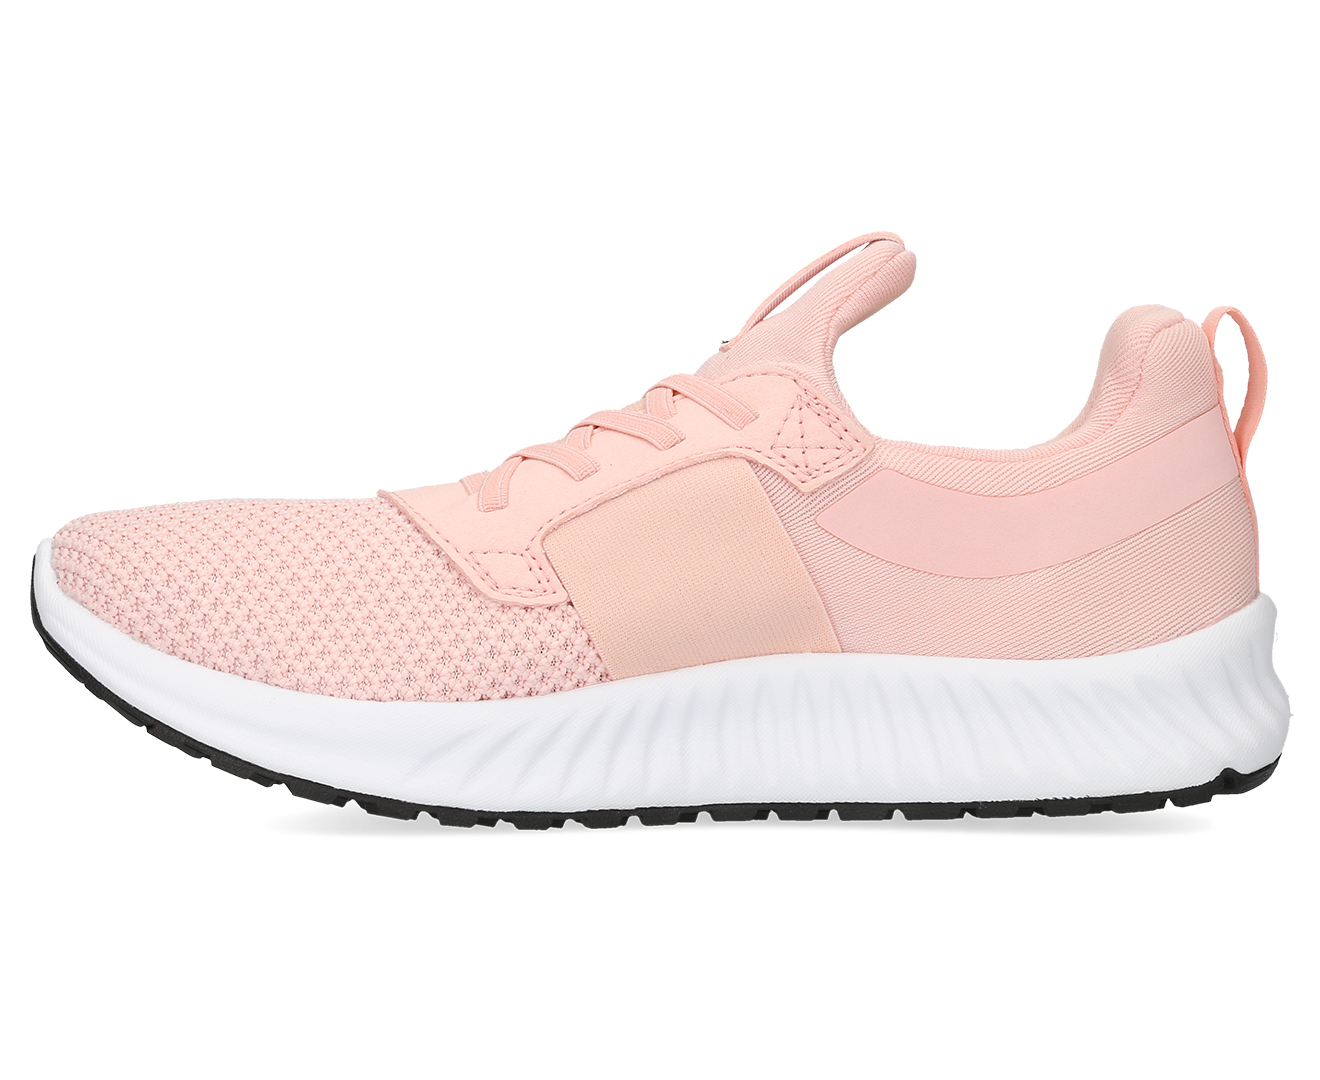 2676bc4bc6 Saucony Women's Stretch & Go Breeze Shoe - Pink/White